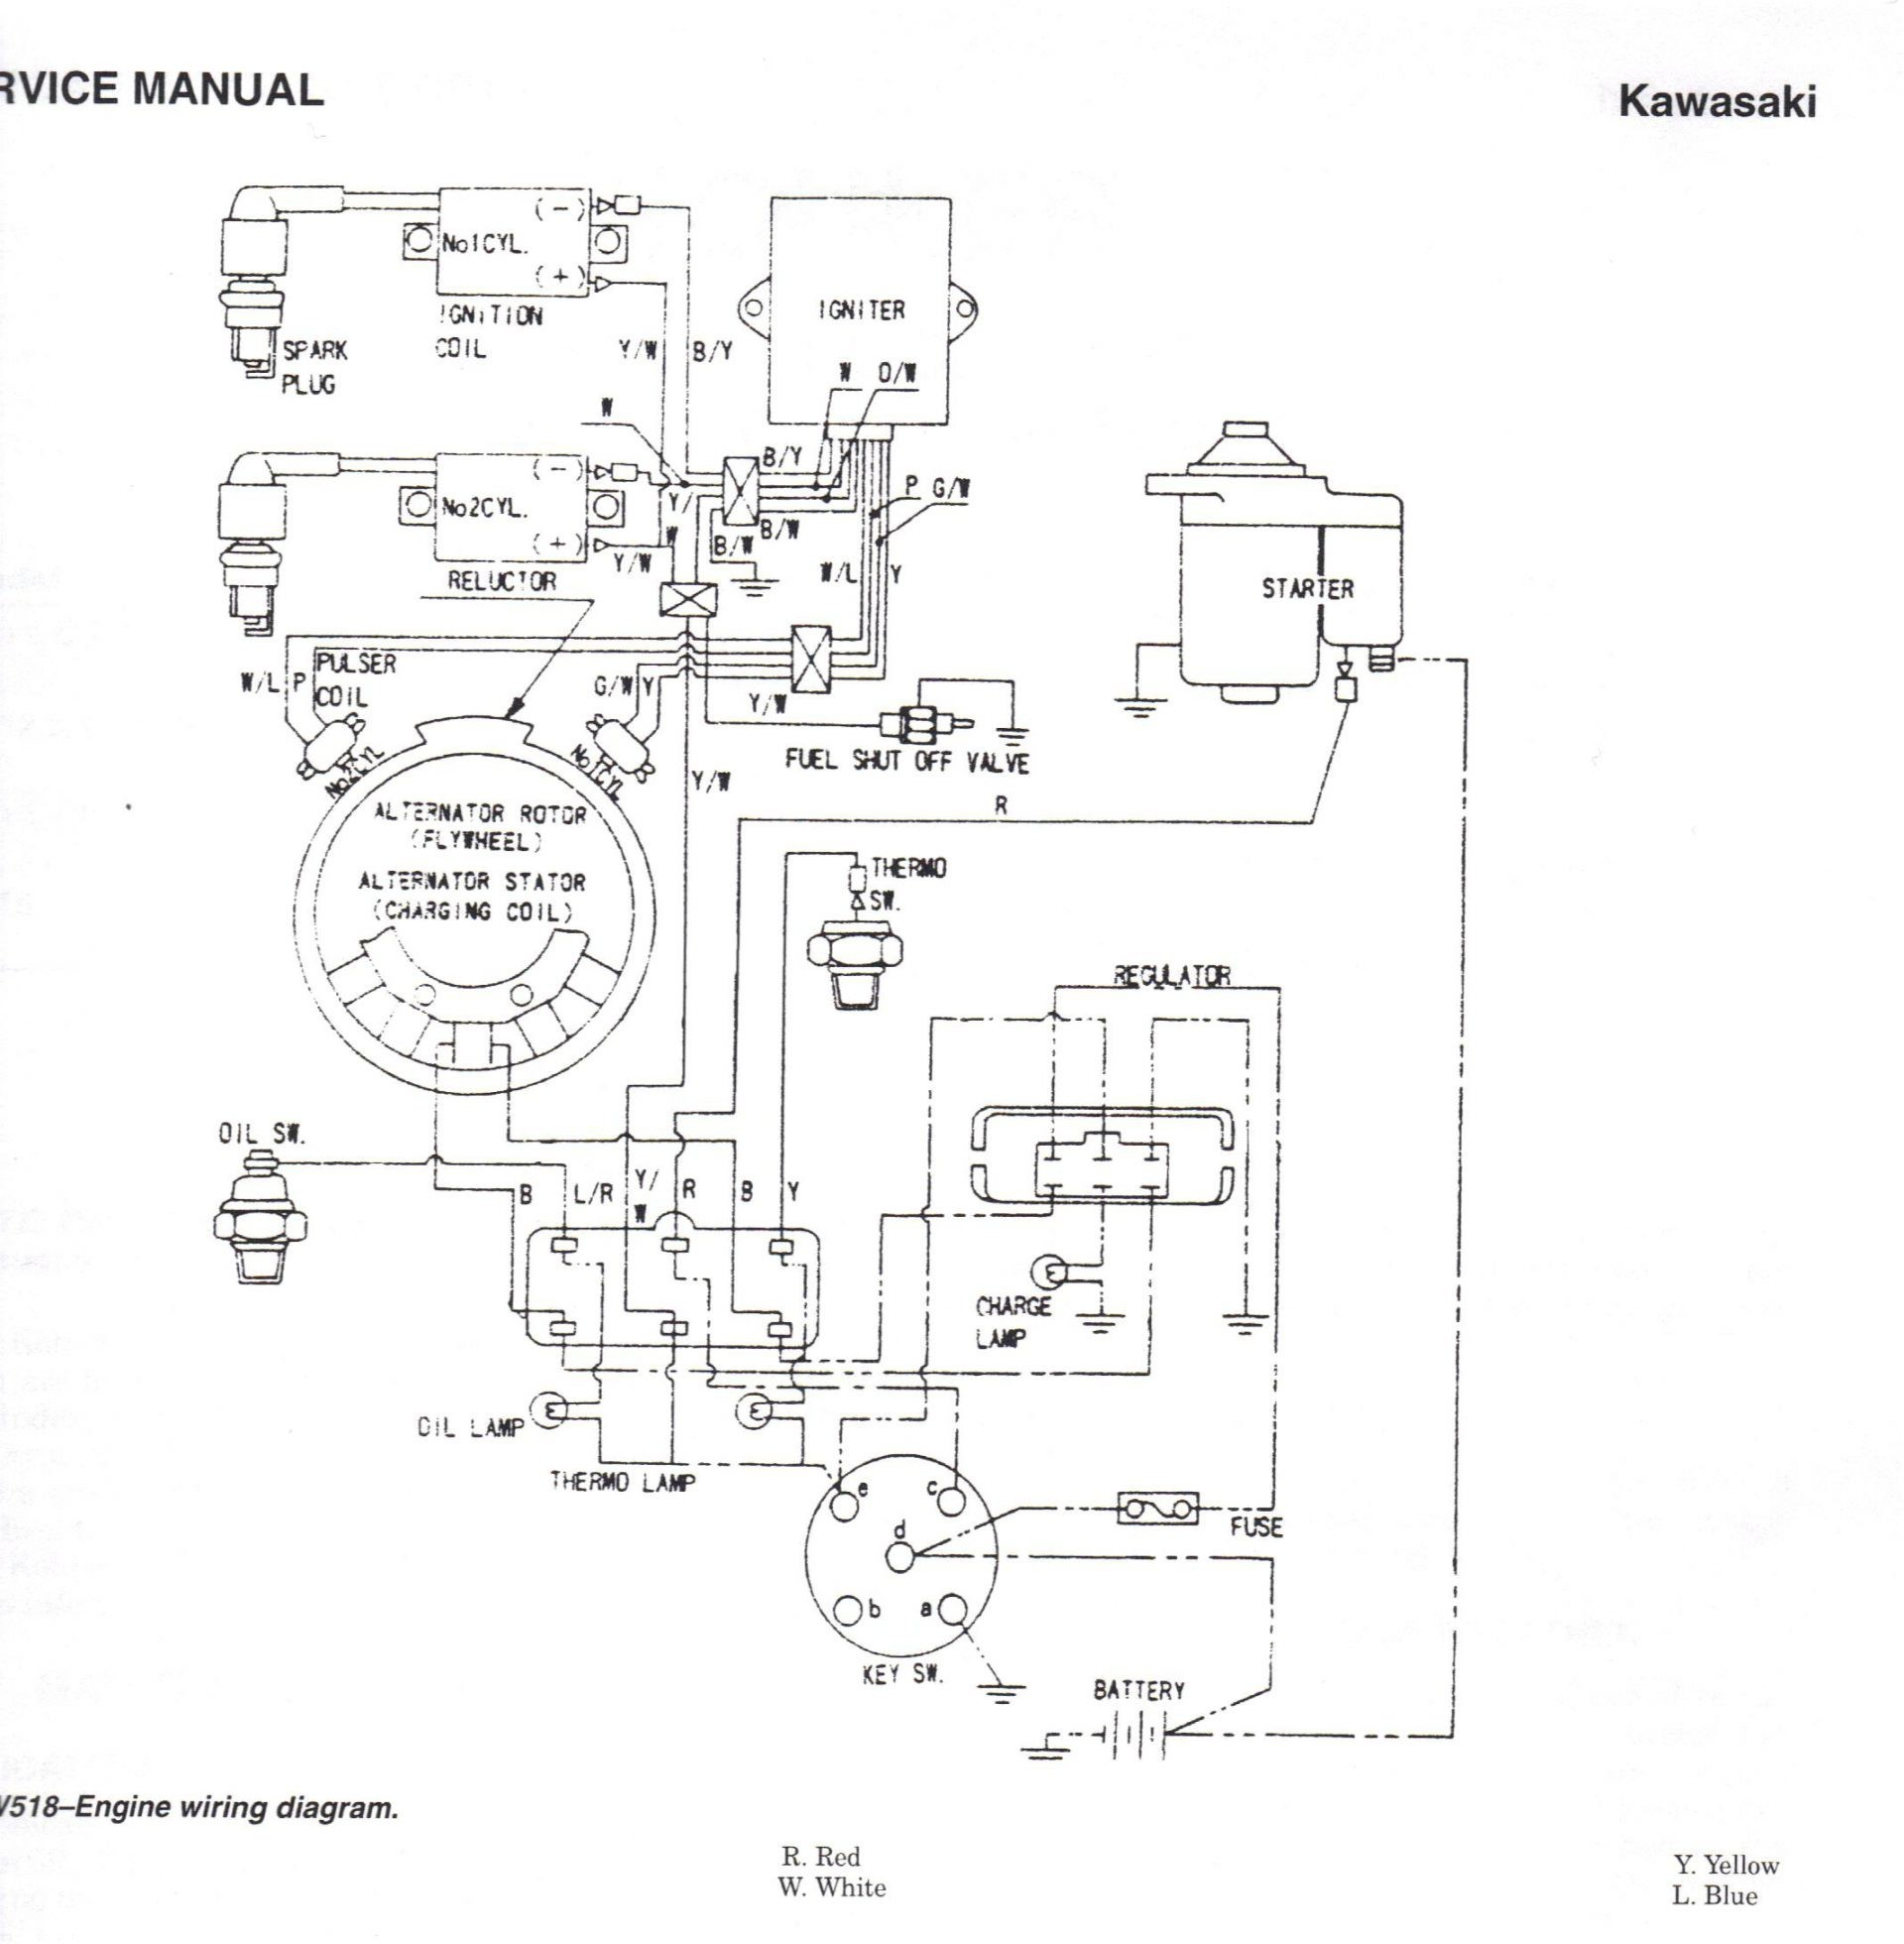 hight resolution of ford 4600 wiring diagram ford 4600 tractor ford 4600 steering ford 4000 tractor electrical diagram